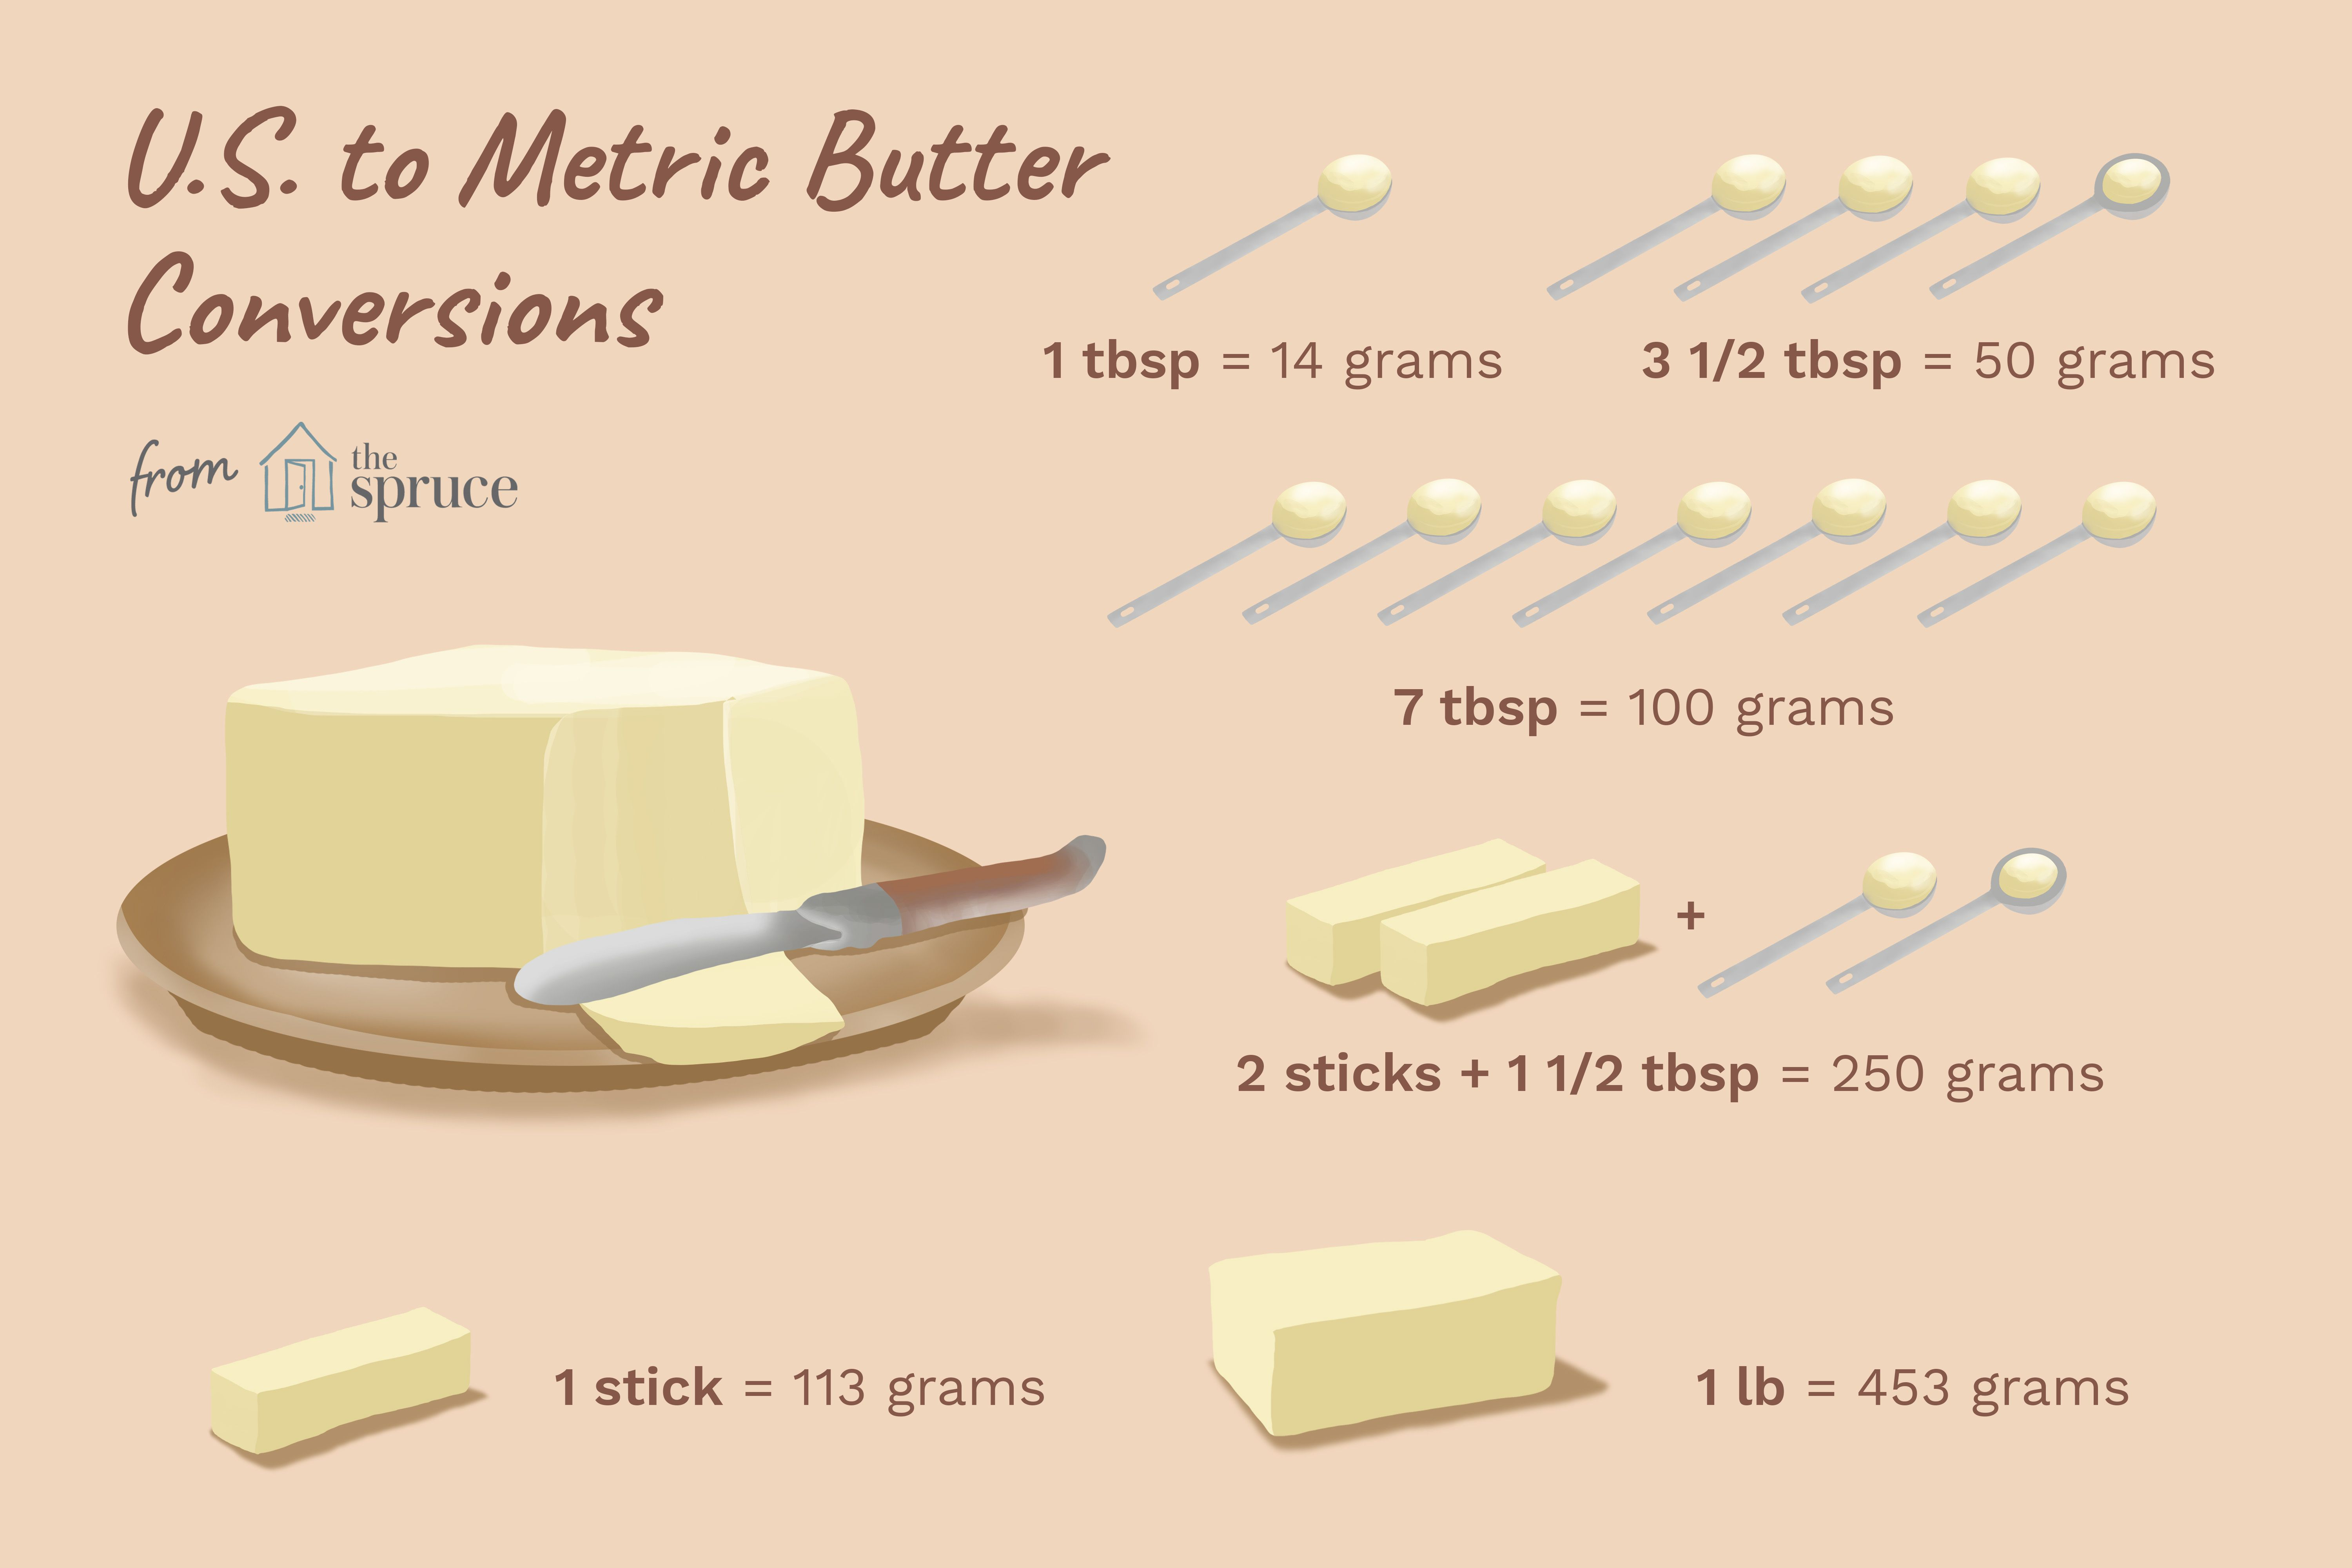 Converting Grams Of Butter To Us Tablespoons